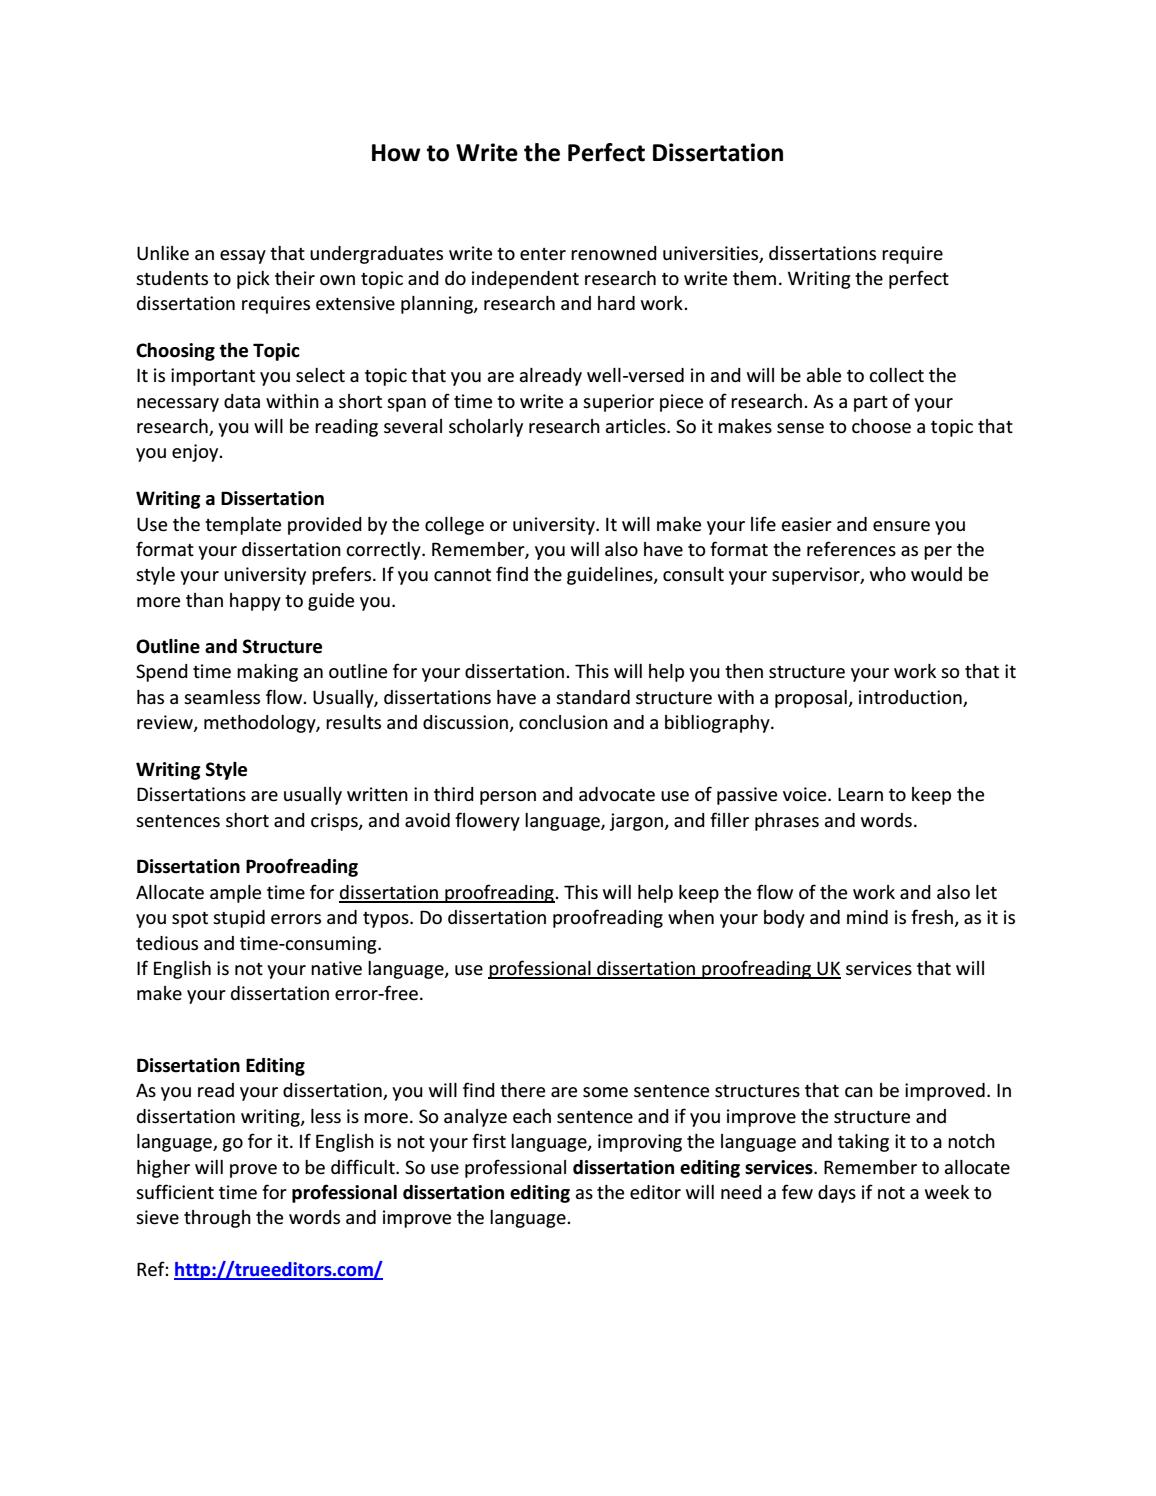 Professional dissertation conclusion writers site uk assignment proofreading sites